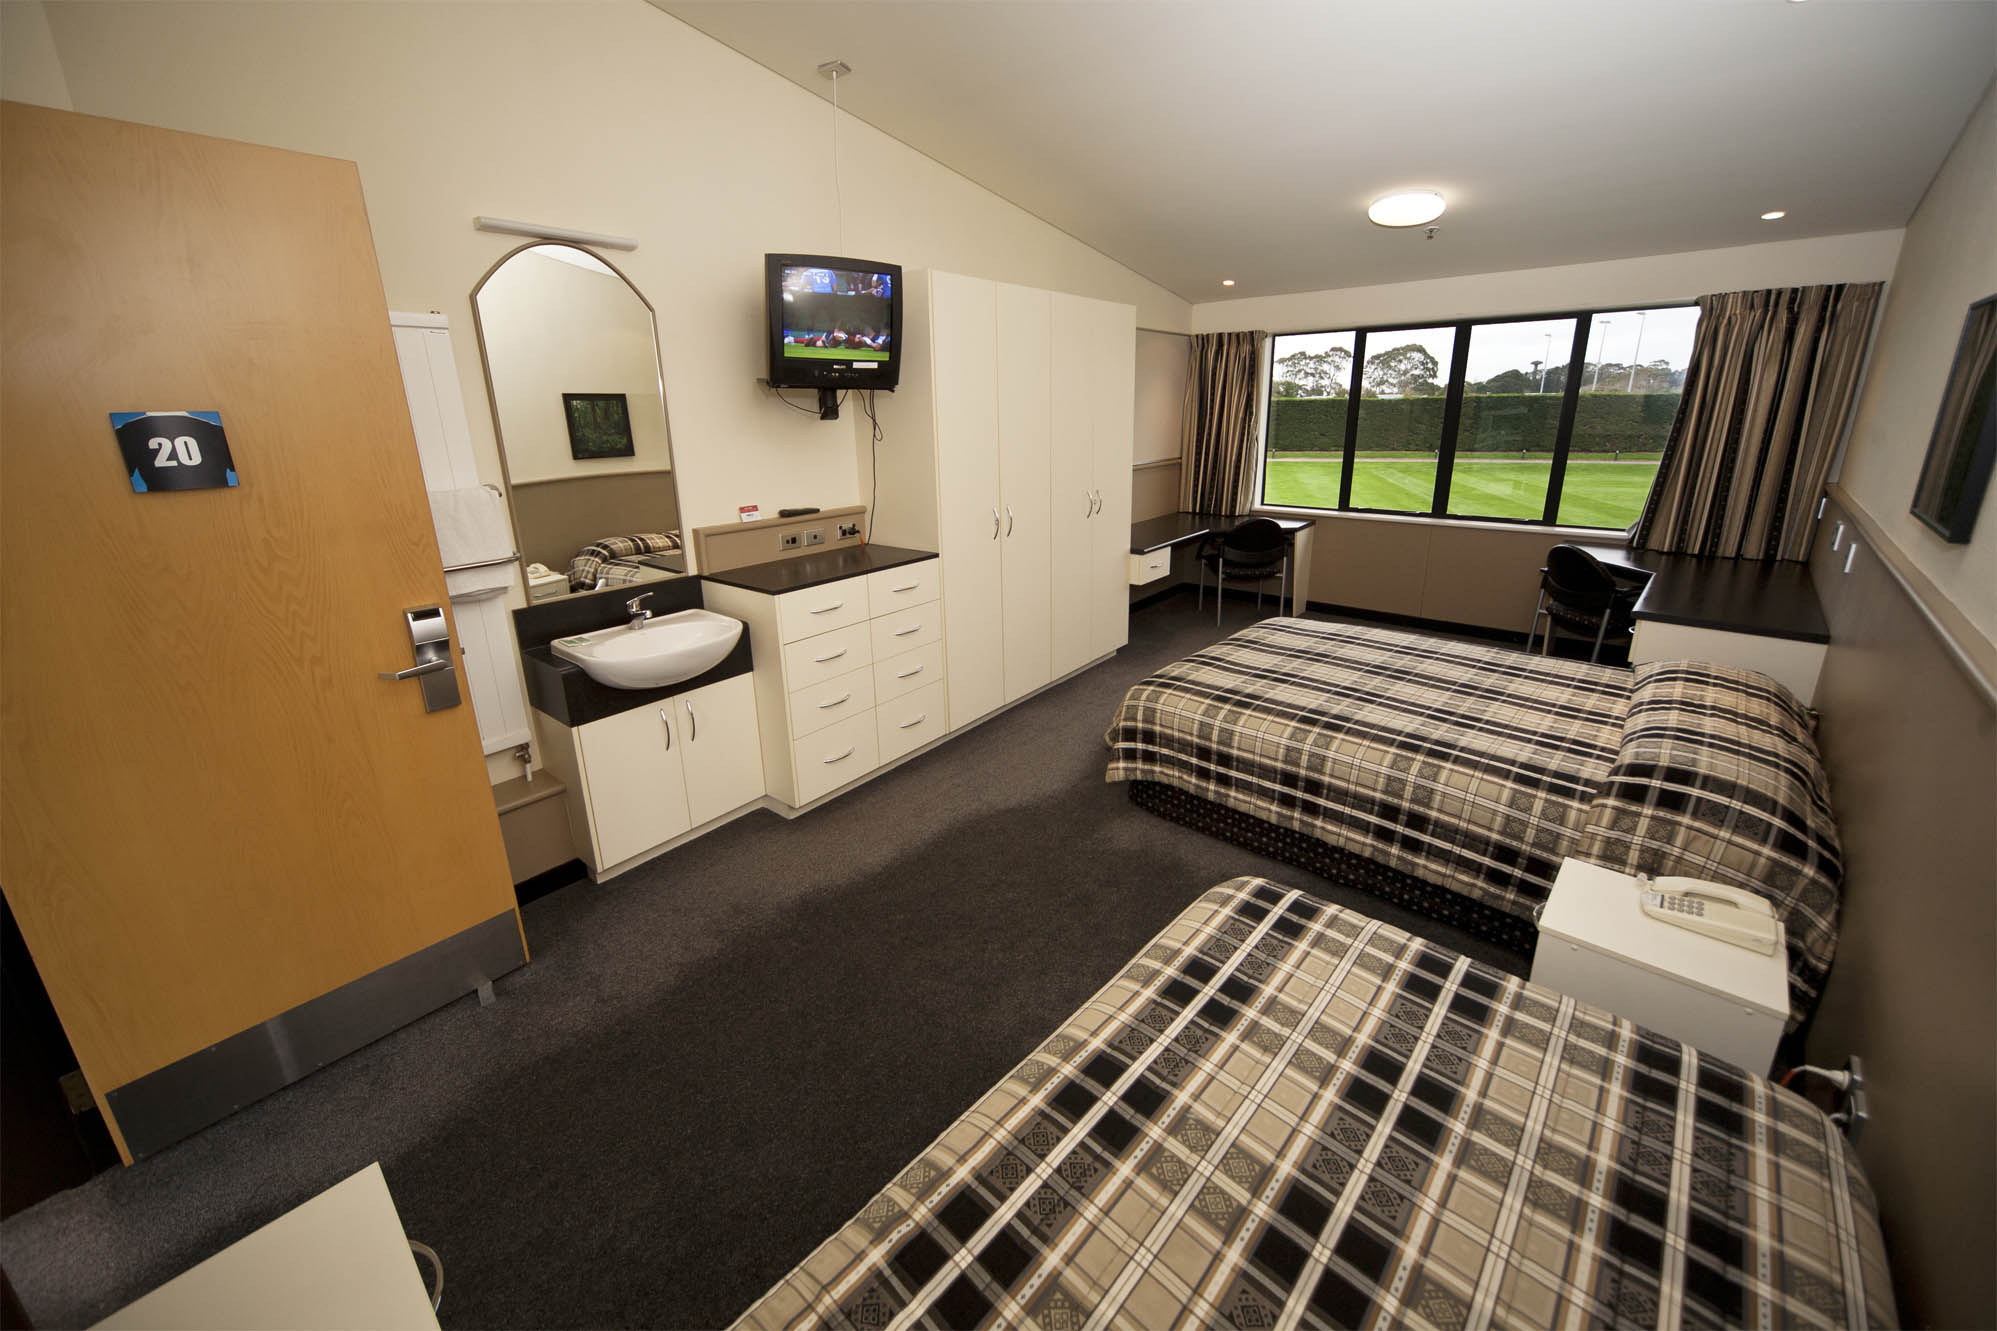 The accommodation block features a number of twin and triple share bedrooms for players and coaches to stay on site